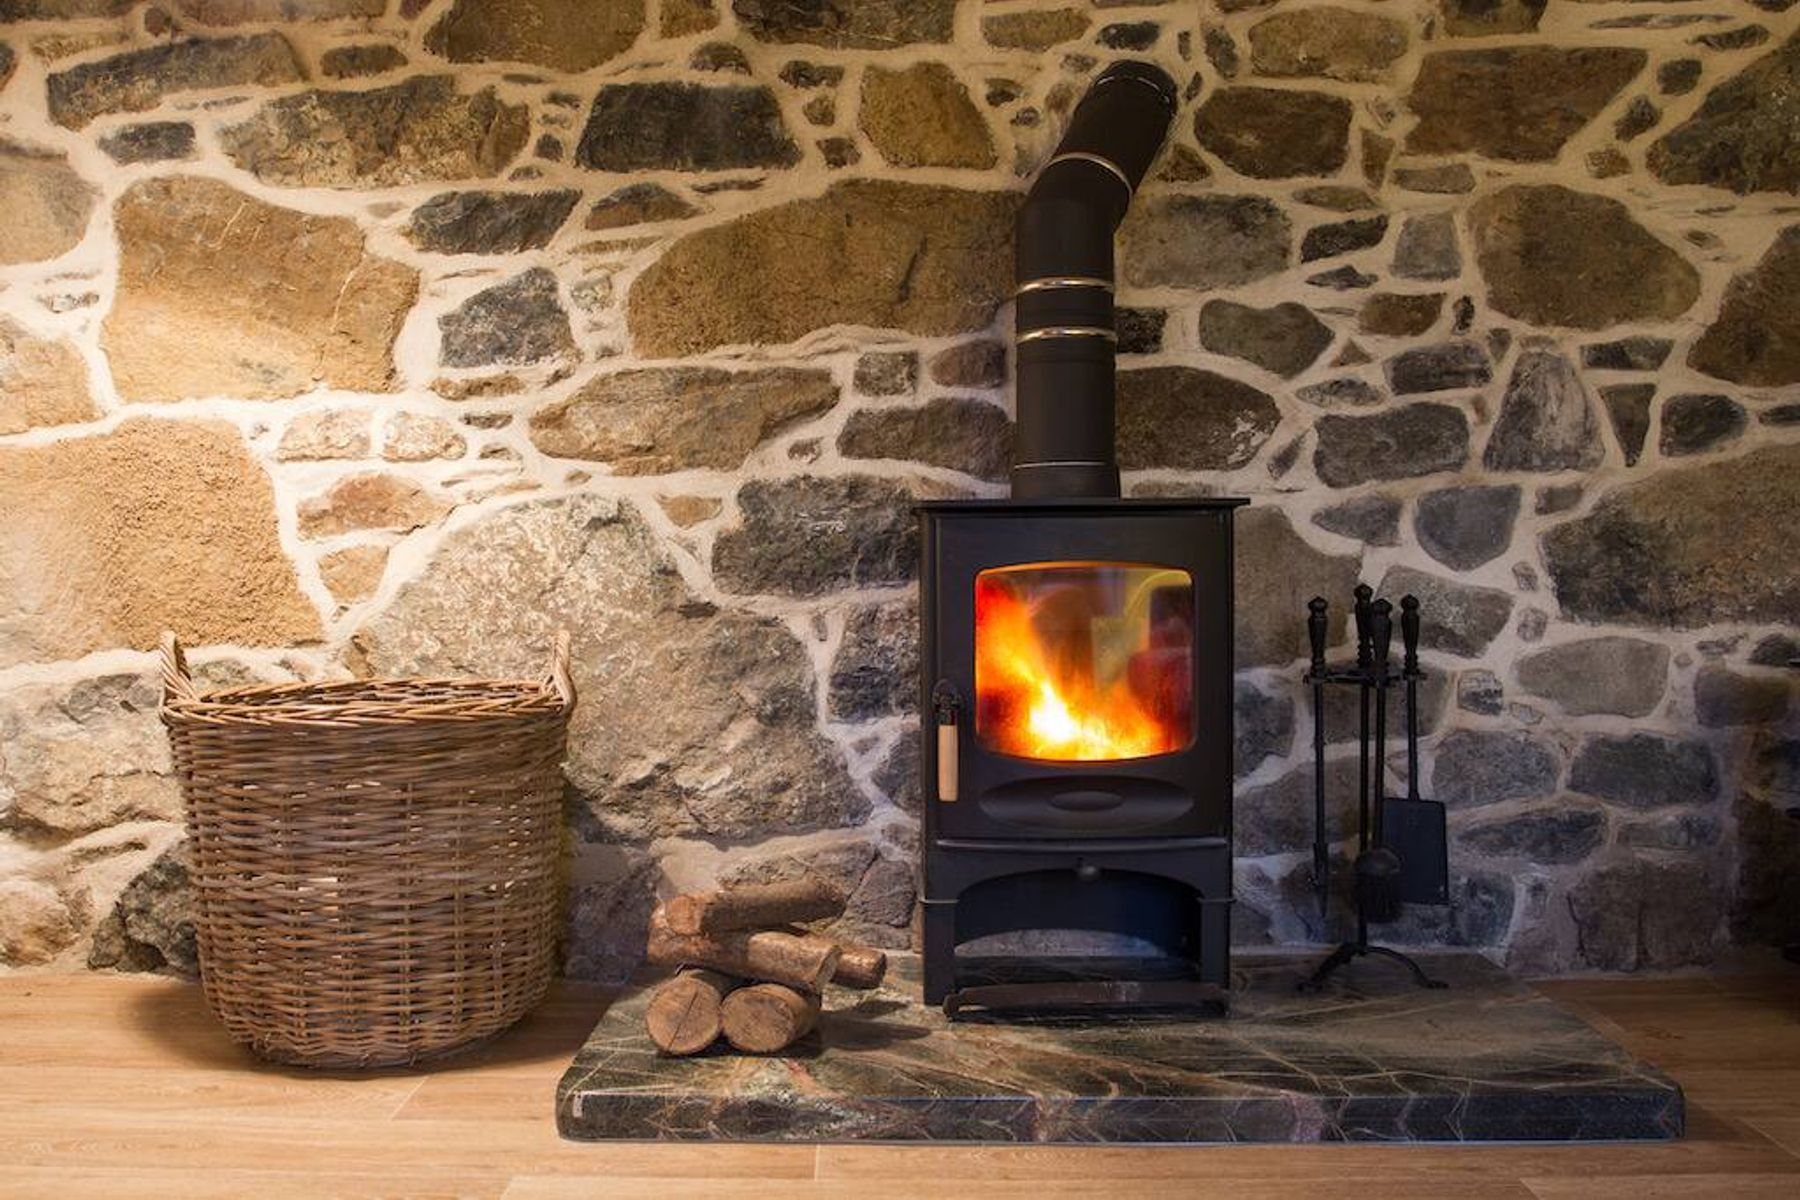 How to clean a log burner: wood burner in a living room